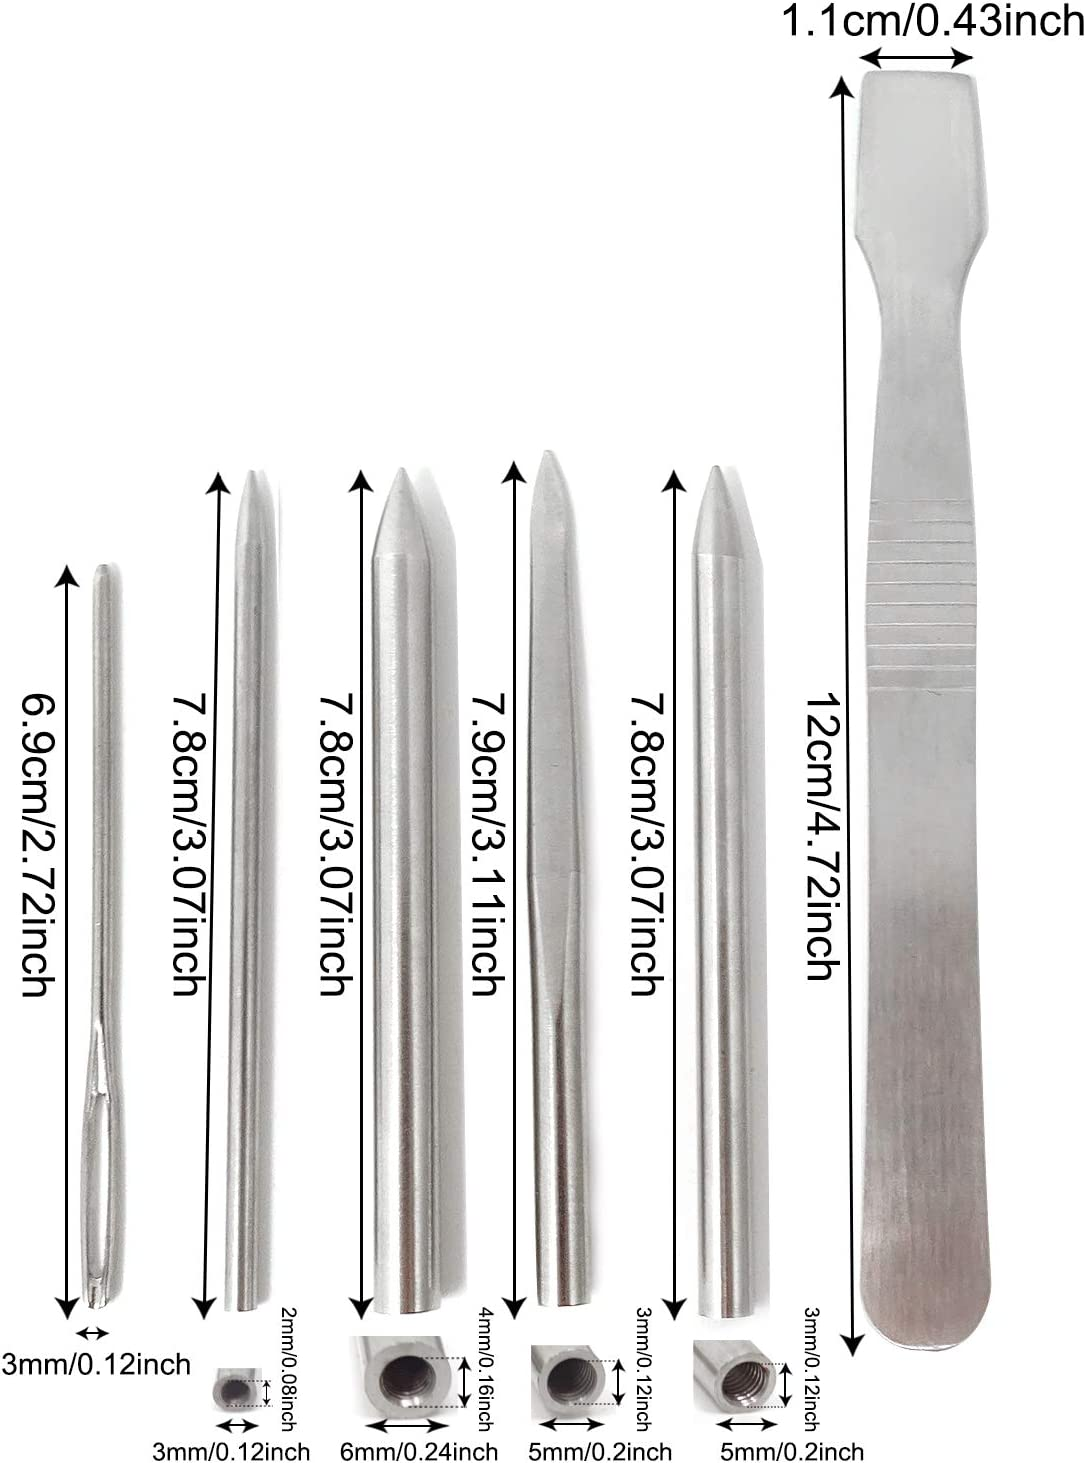 Honbay 6PCS Stainless Steel Paracord Stitching Set 3 Round Head Lacing Needles 1 Flat Head Needle 1 Large Eye Needle and 1 Paracord Smoothing Tool with a Bag